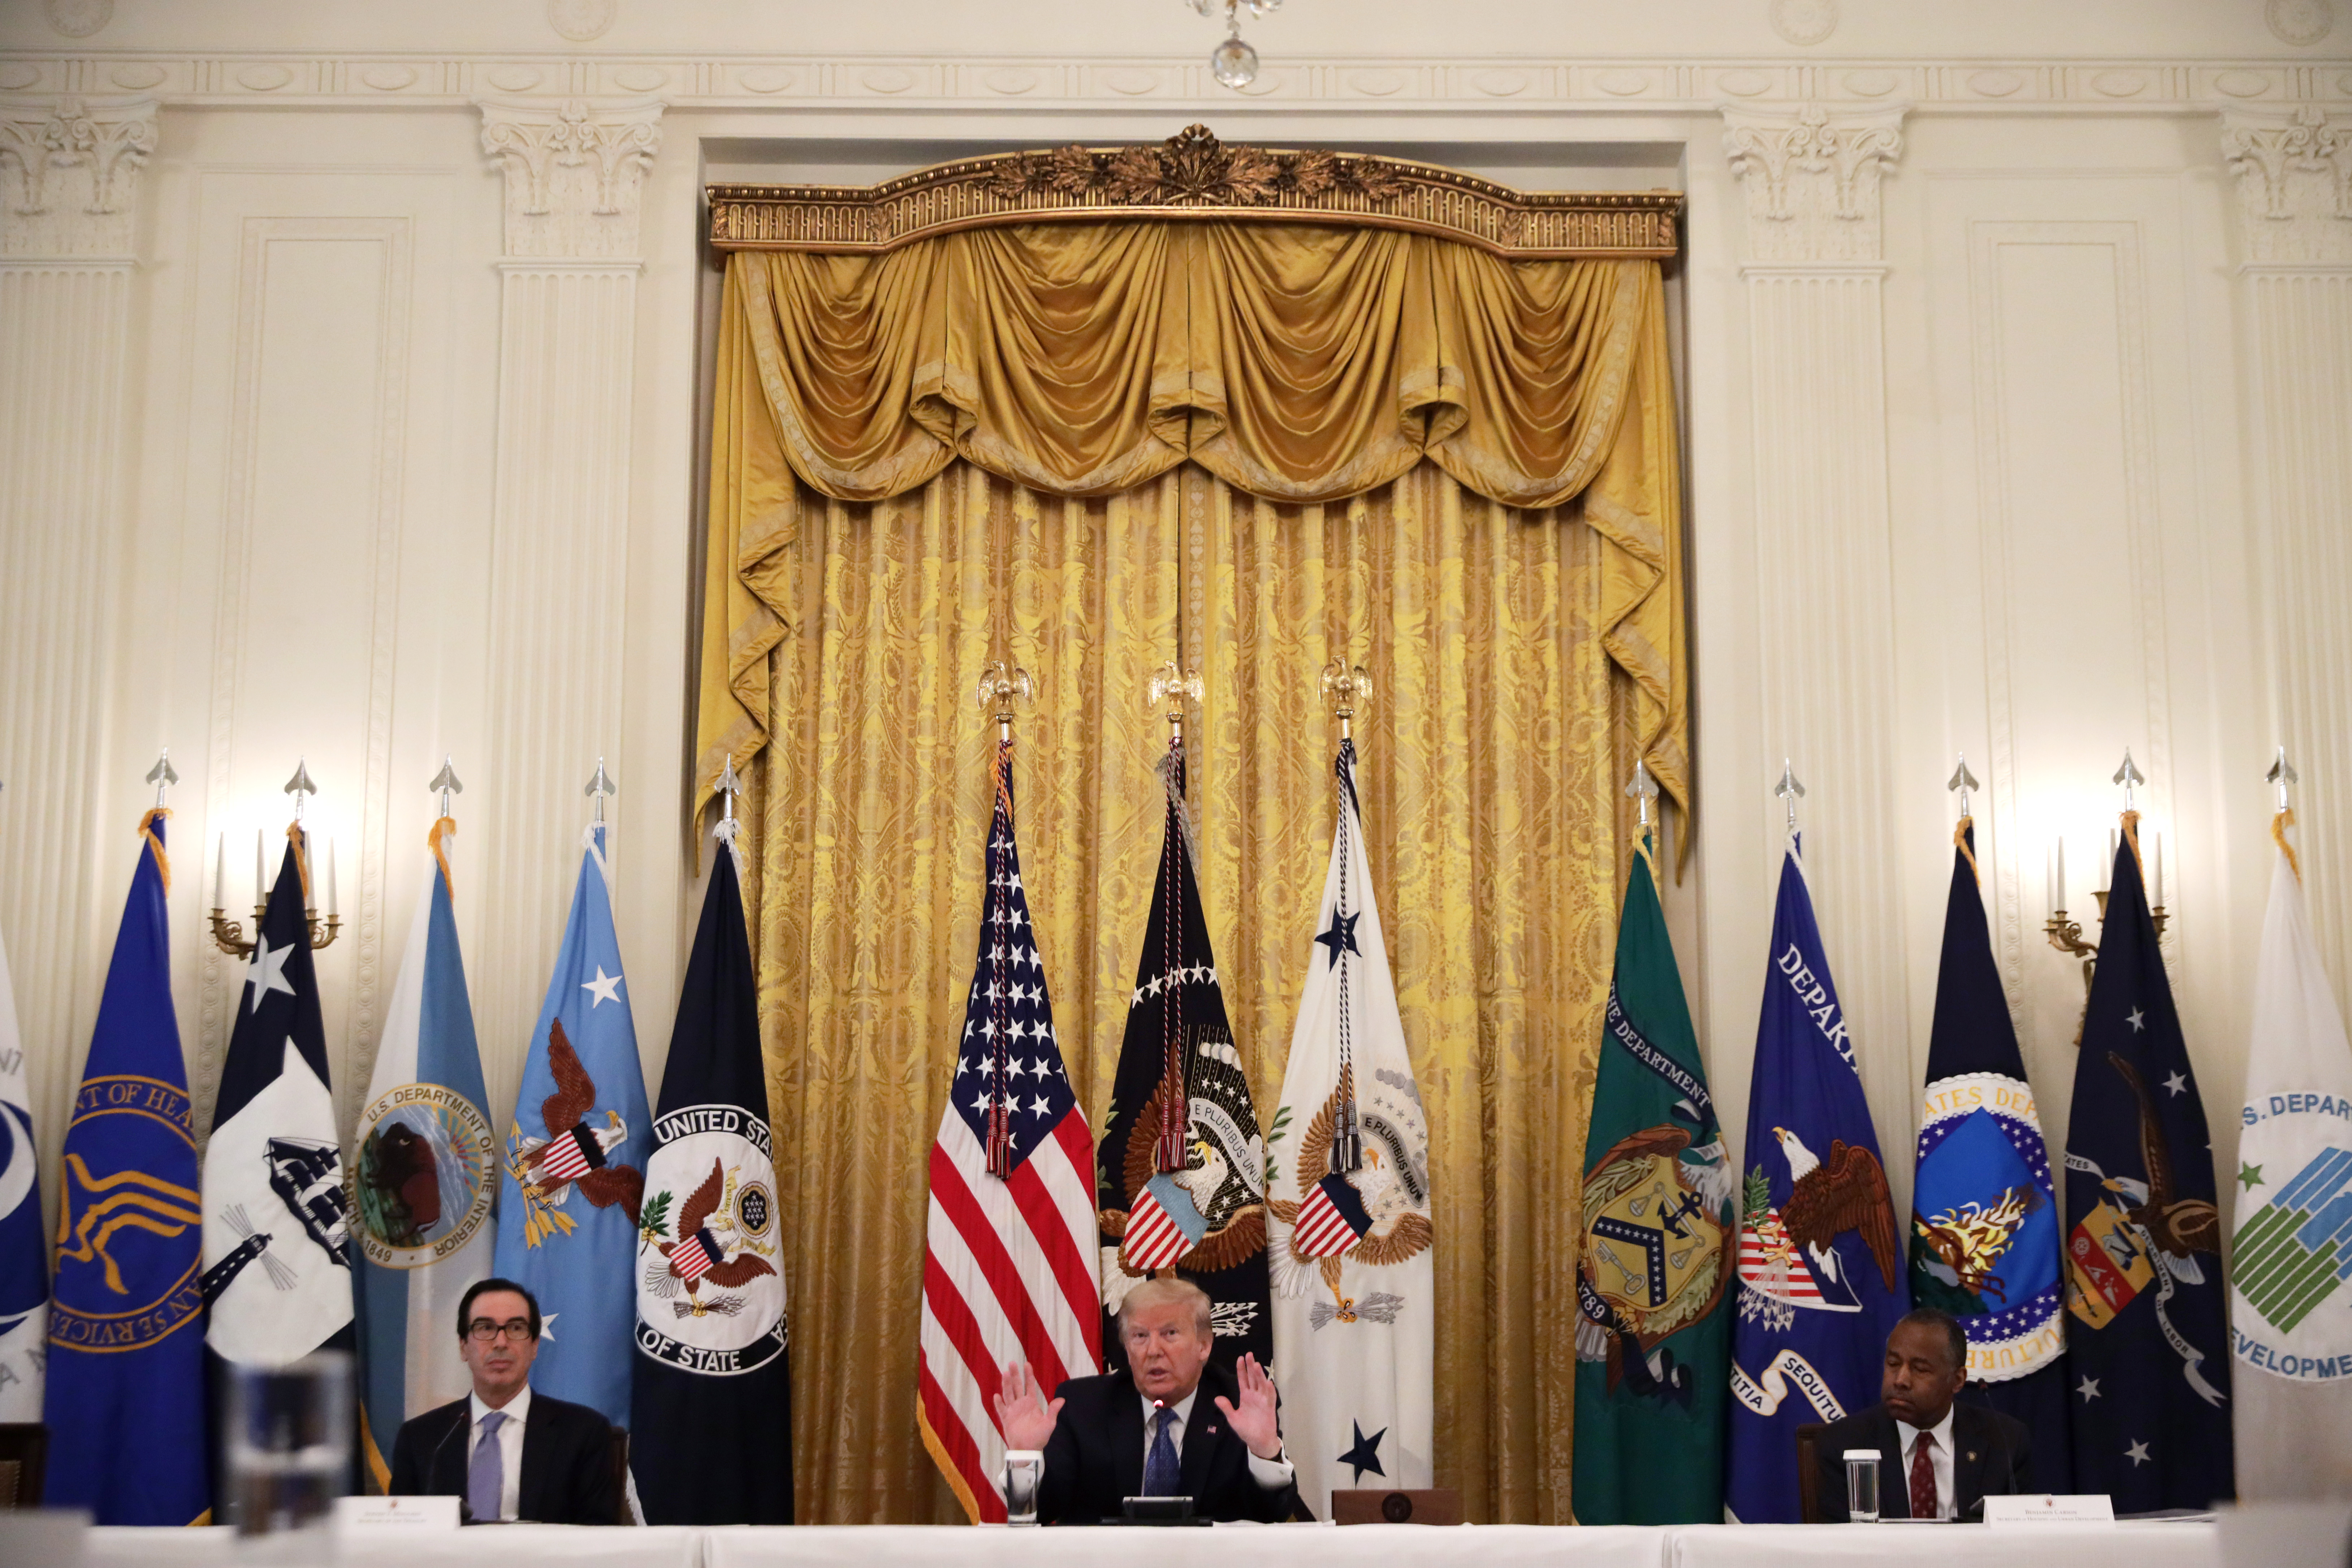 WASHINGTON, DC - MAY 19: U.S. President Donald Trump speaks as Secretary of the Treasury Steven Mnuchin and Secretary of Housing and Urban Development Ben Carson listen during a meeting with his cabinet in the East Room of the White House on May 19, 2020 in Washington, DC. Earlier in the day President Trump met with members of the Senate GOP. (Photo by Alex Wong/Getty Images)